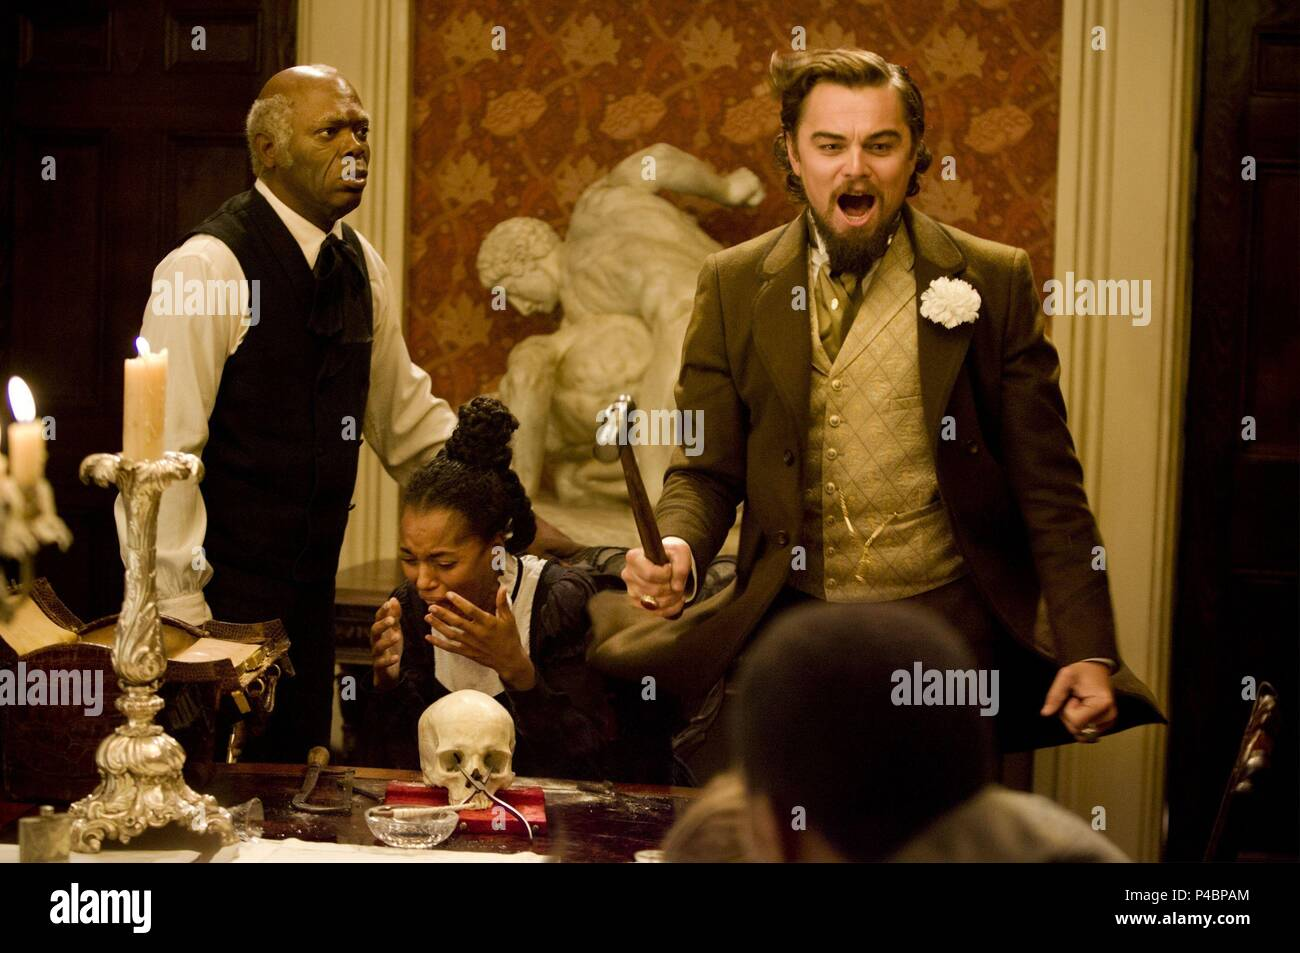 0717404cdc4fb5 Original Film Title: DJANGO UNCHAINED. English Title: DJANGO UNCHAINED. Film  Director: QUENTIN TARANTINO. Year: 2012. Stars: LEONARDO DICAPRIO; KERRY ...